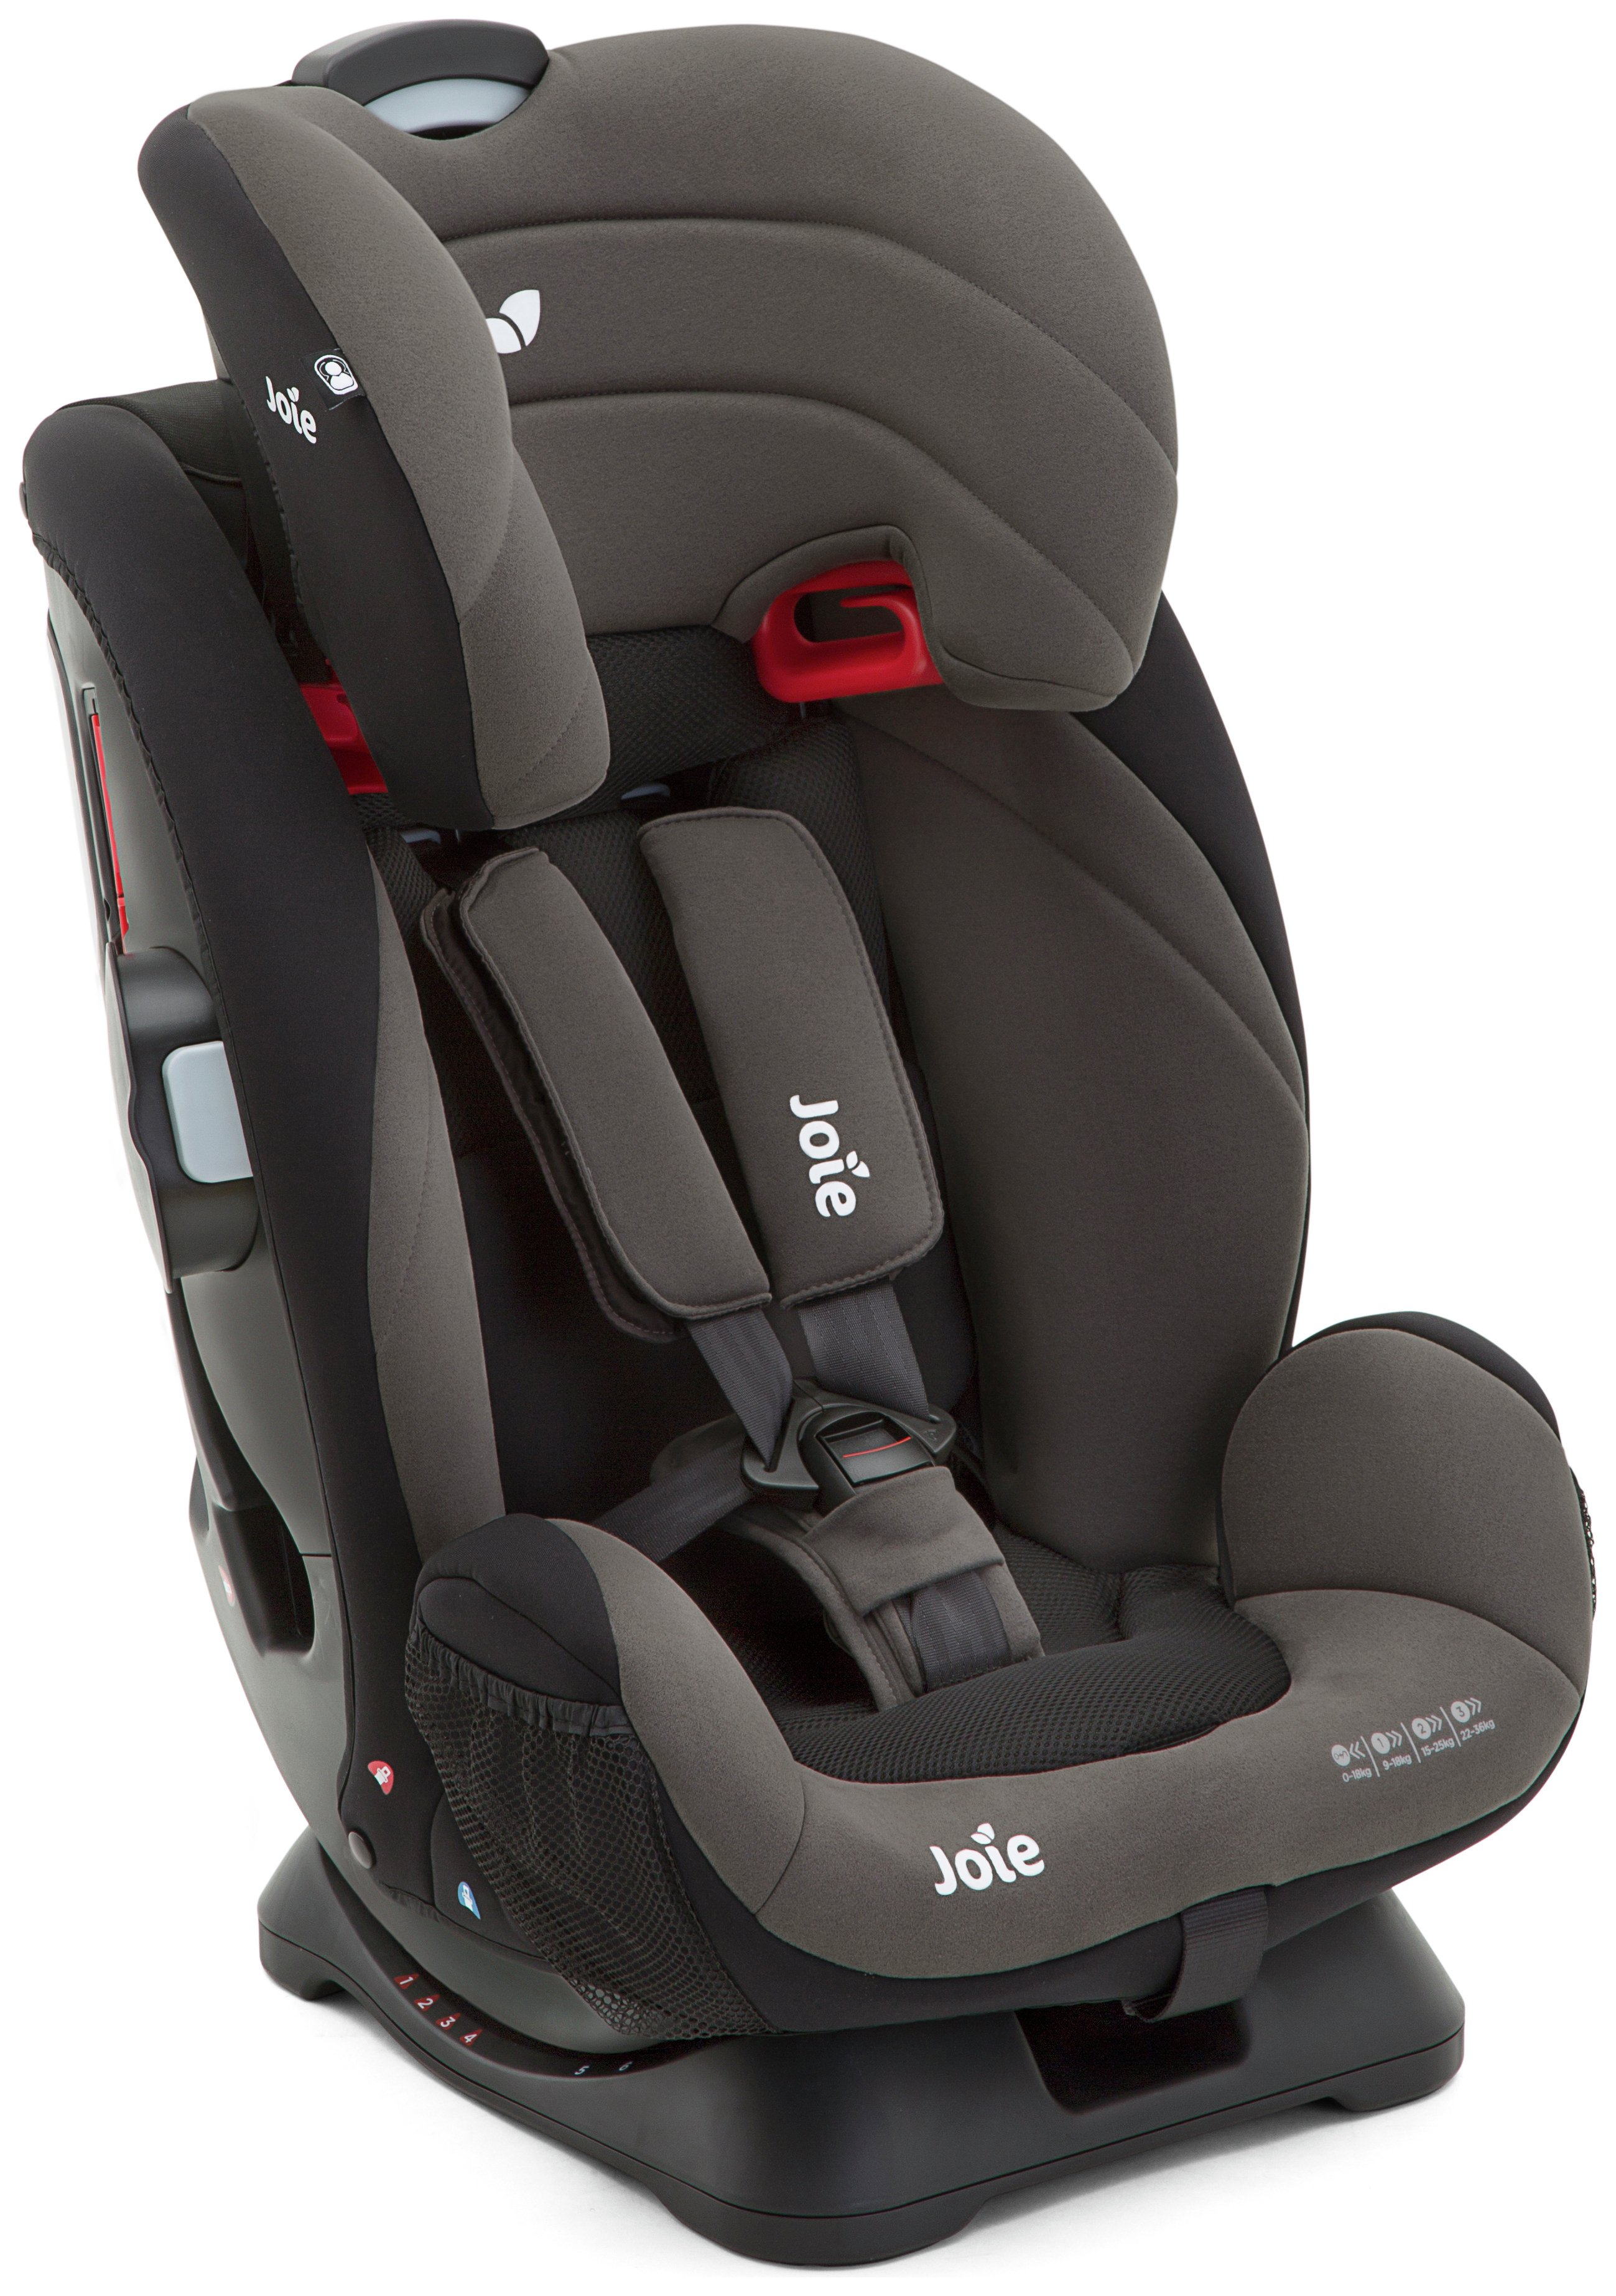 Joie Every Stage 0+ 1-2-3 Pumice Car Seat. Reviews